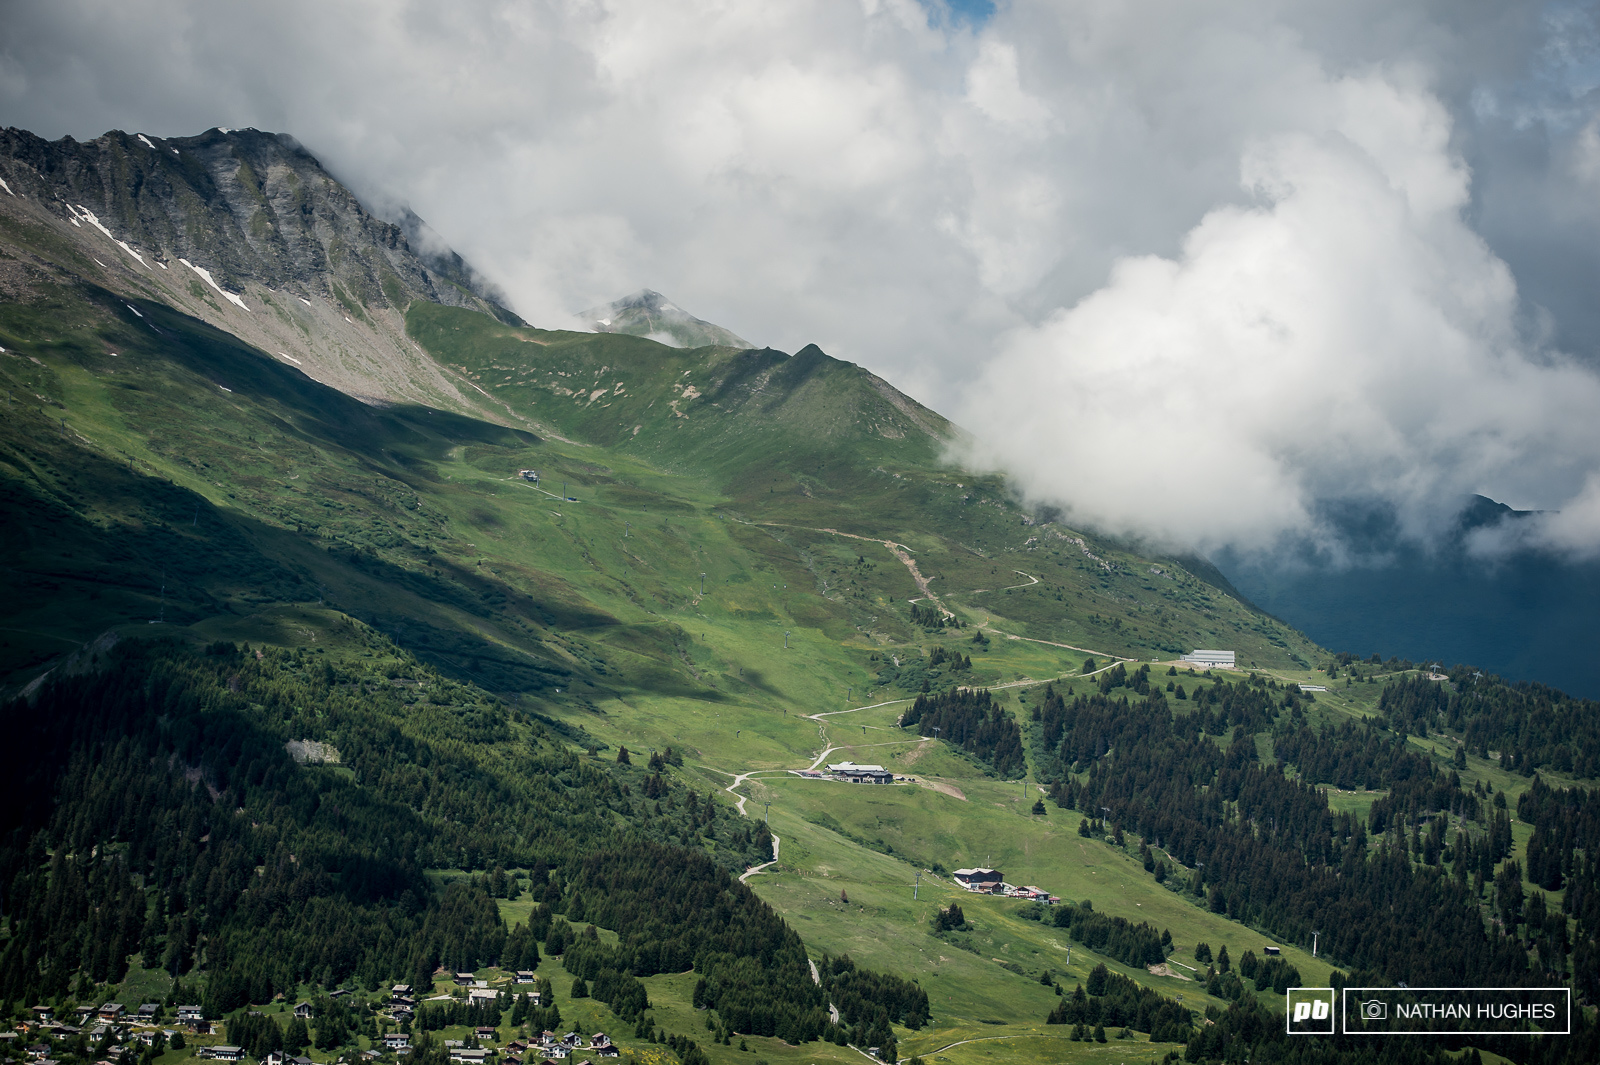 No such thing as bad view here in Graubuenden.